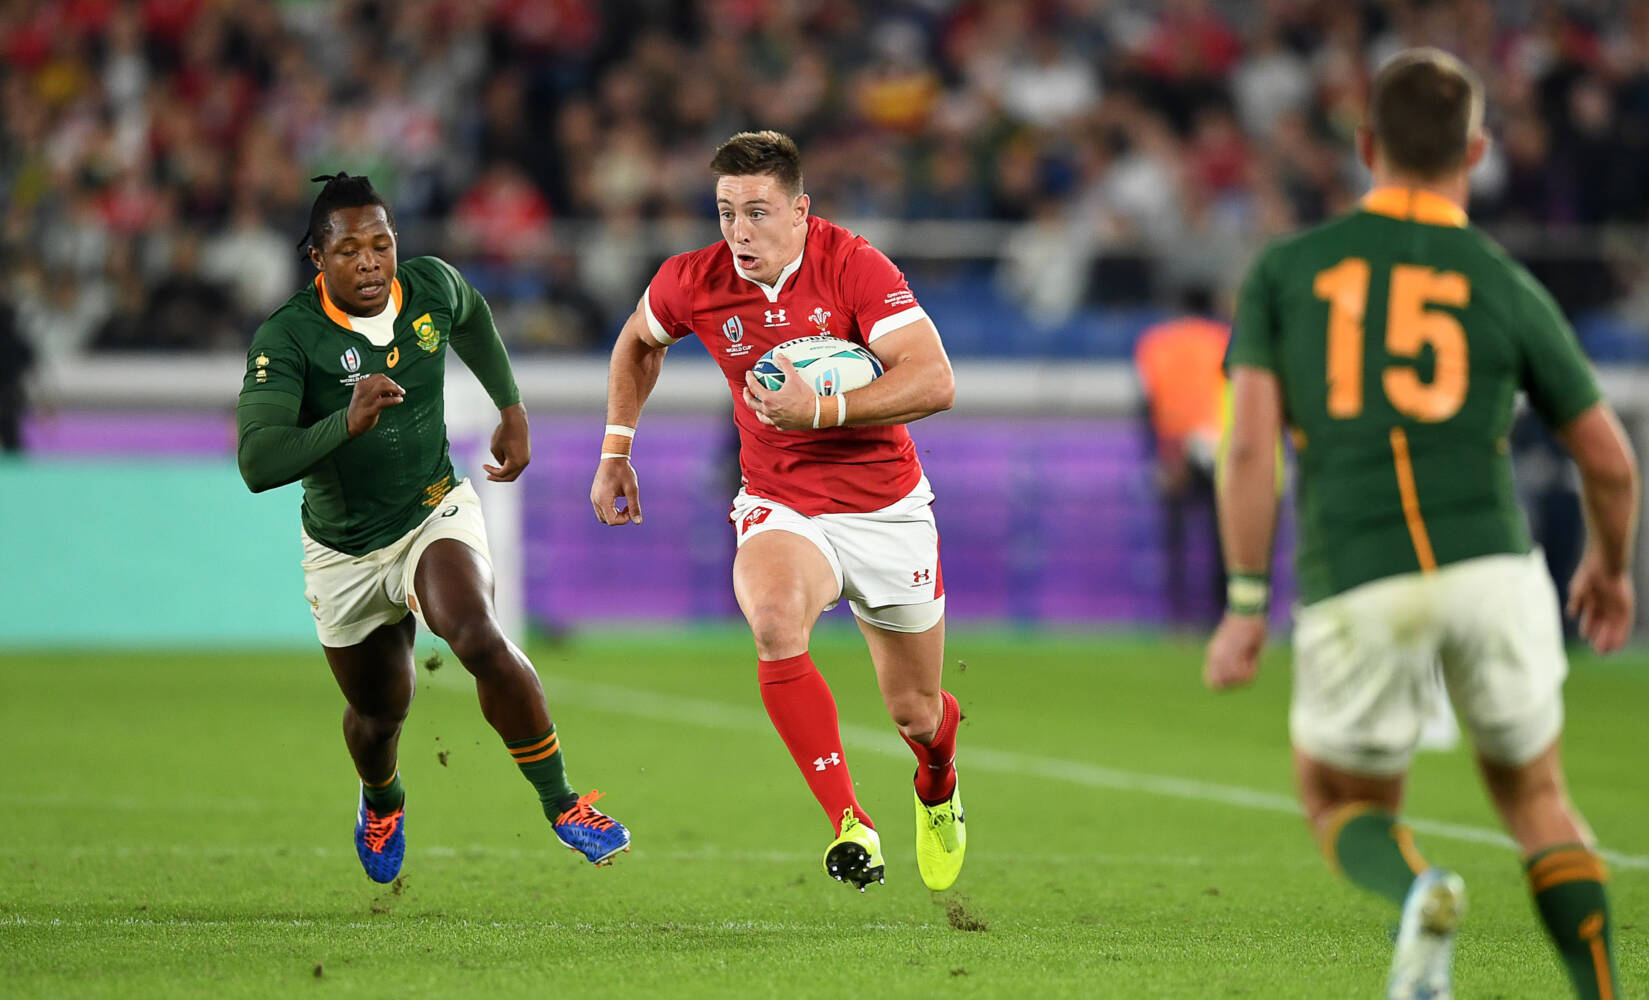 Josh Adams says Wales trickier than Lions for Boks - SARugbymag